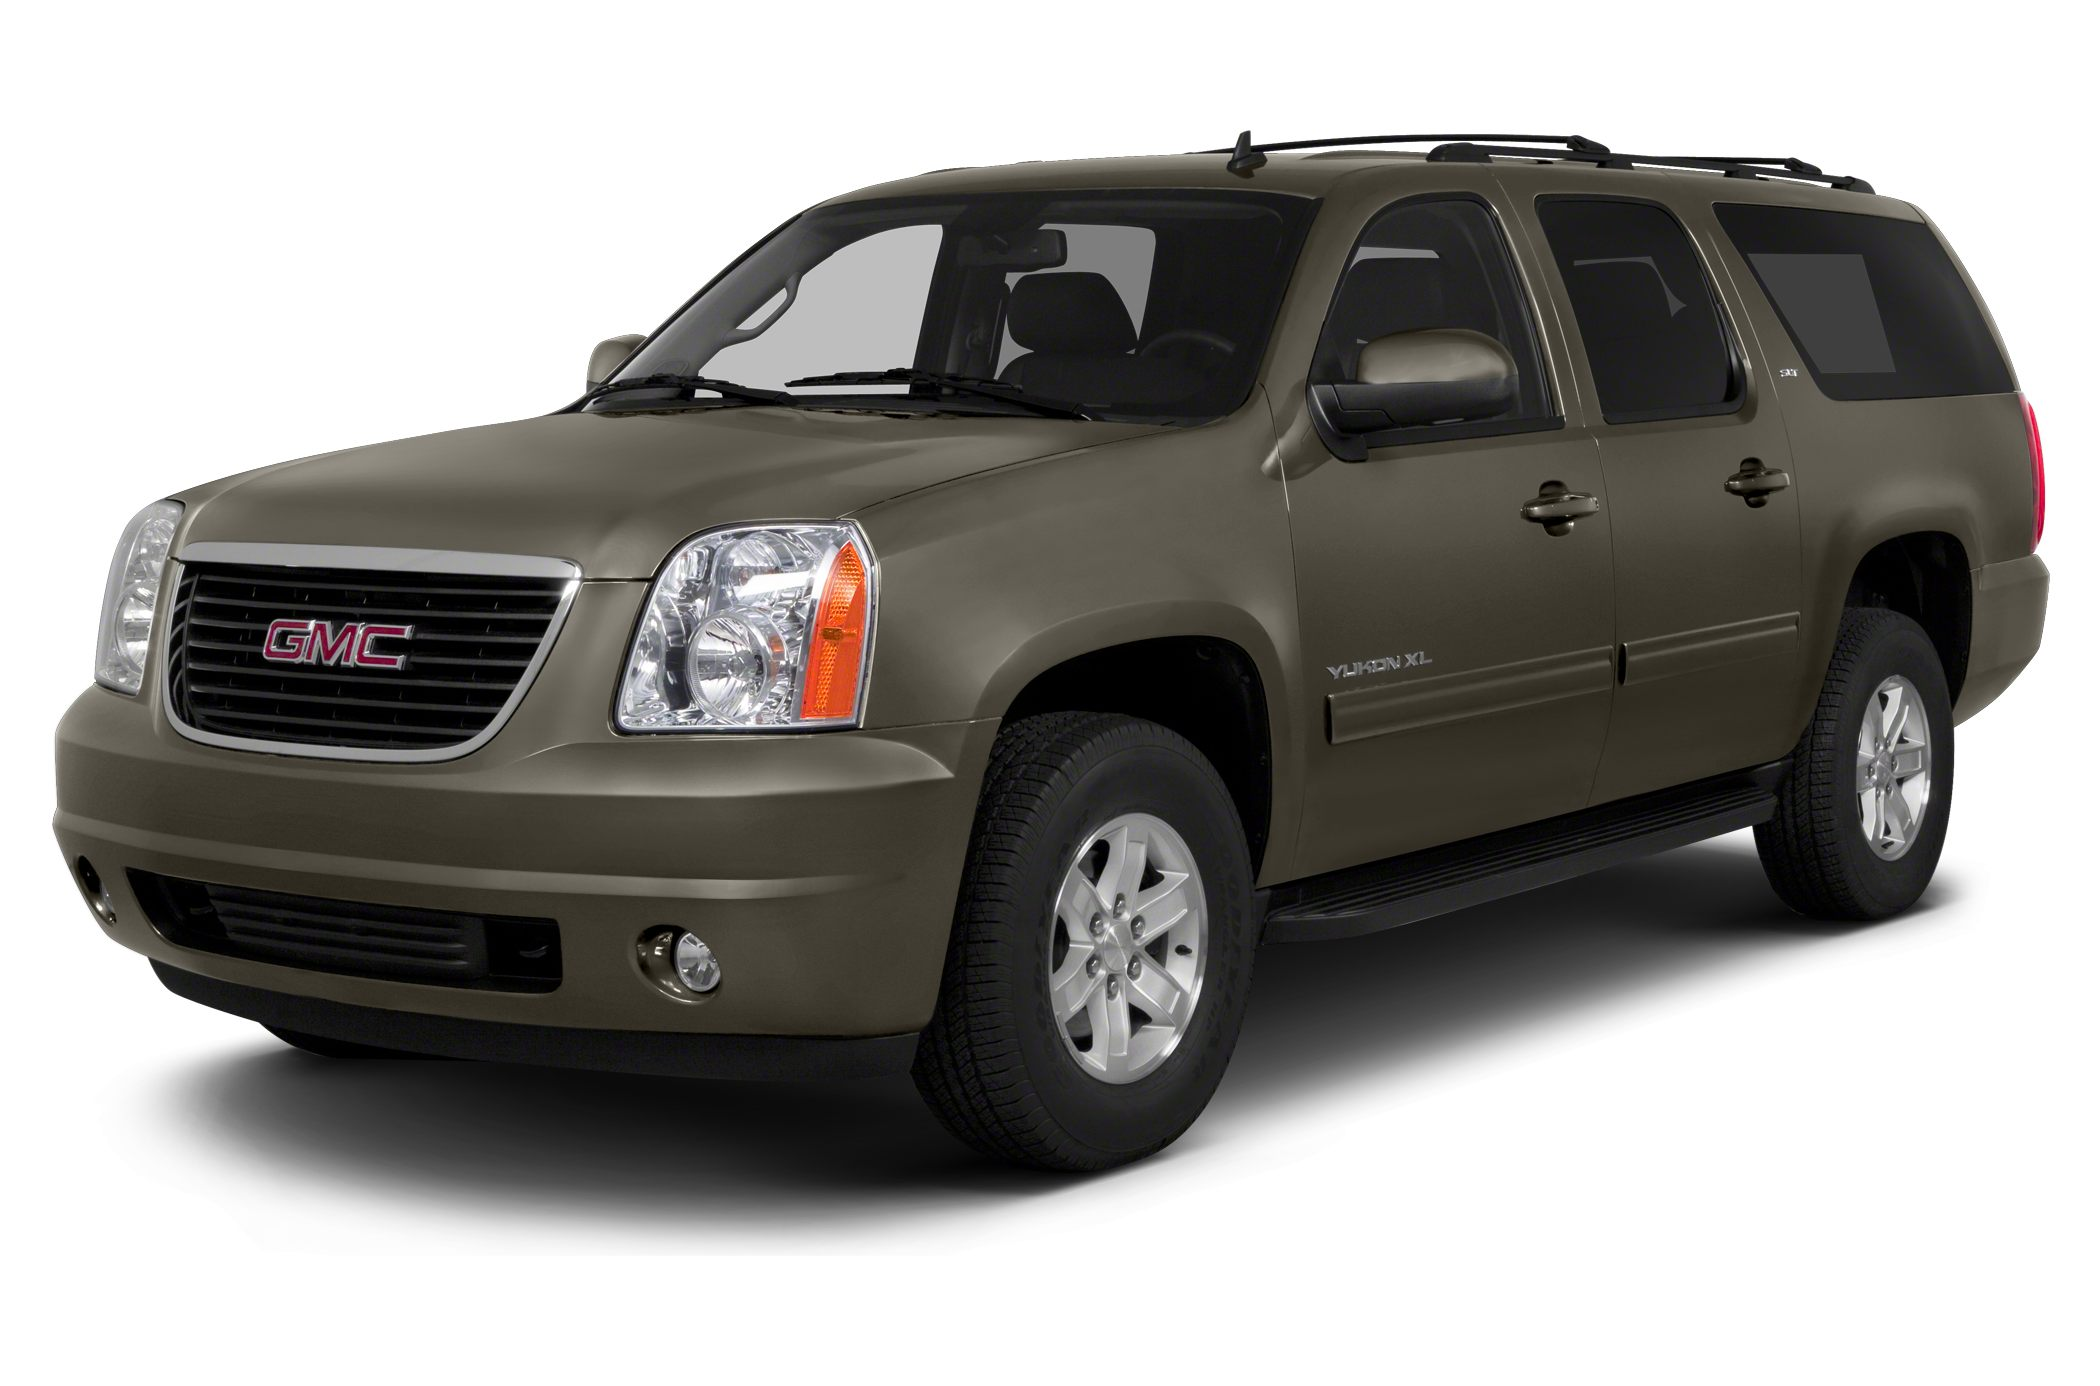 2013 GMC Yukon XL 1500 SLT SUV for sale in Idaho Falls for $30,695 with 50,655 miles.